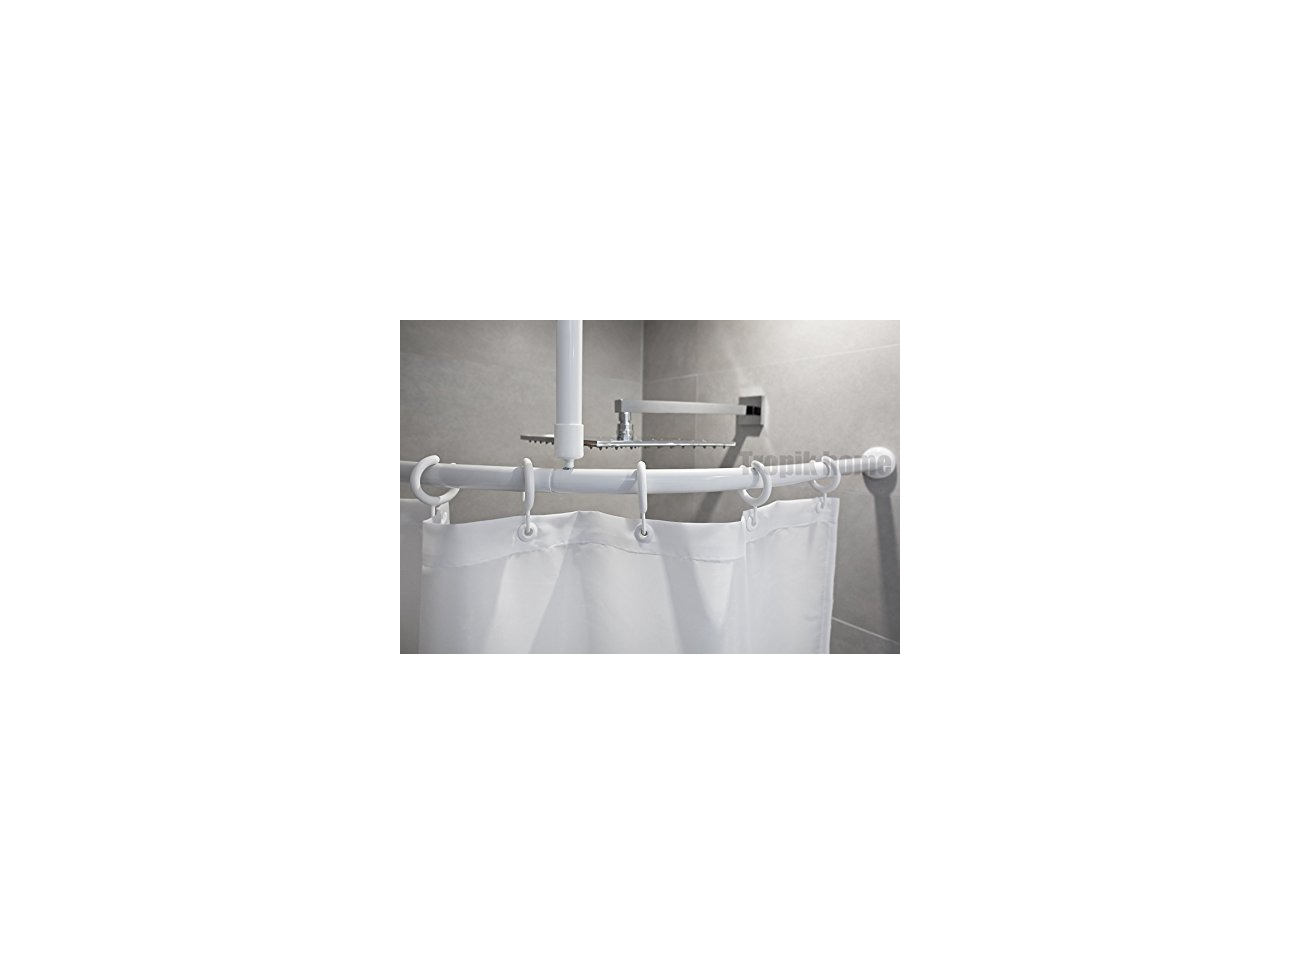 Buy Curved Shower Curtain Rail Pole Rod With Ceiling Bracket